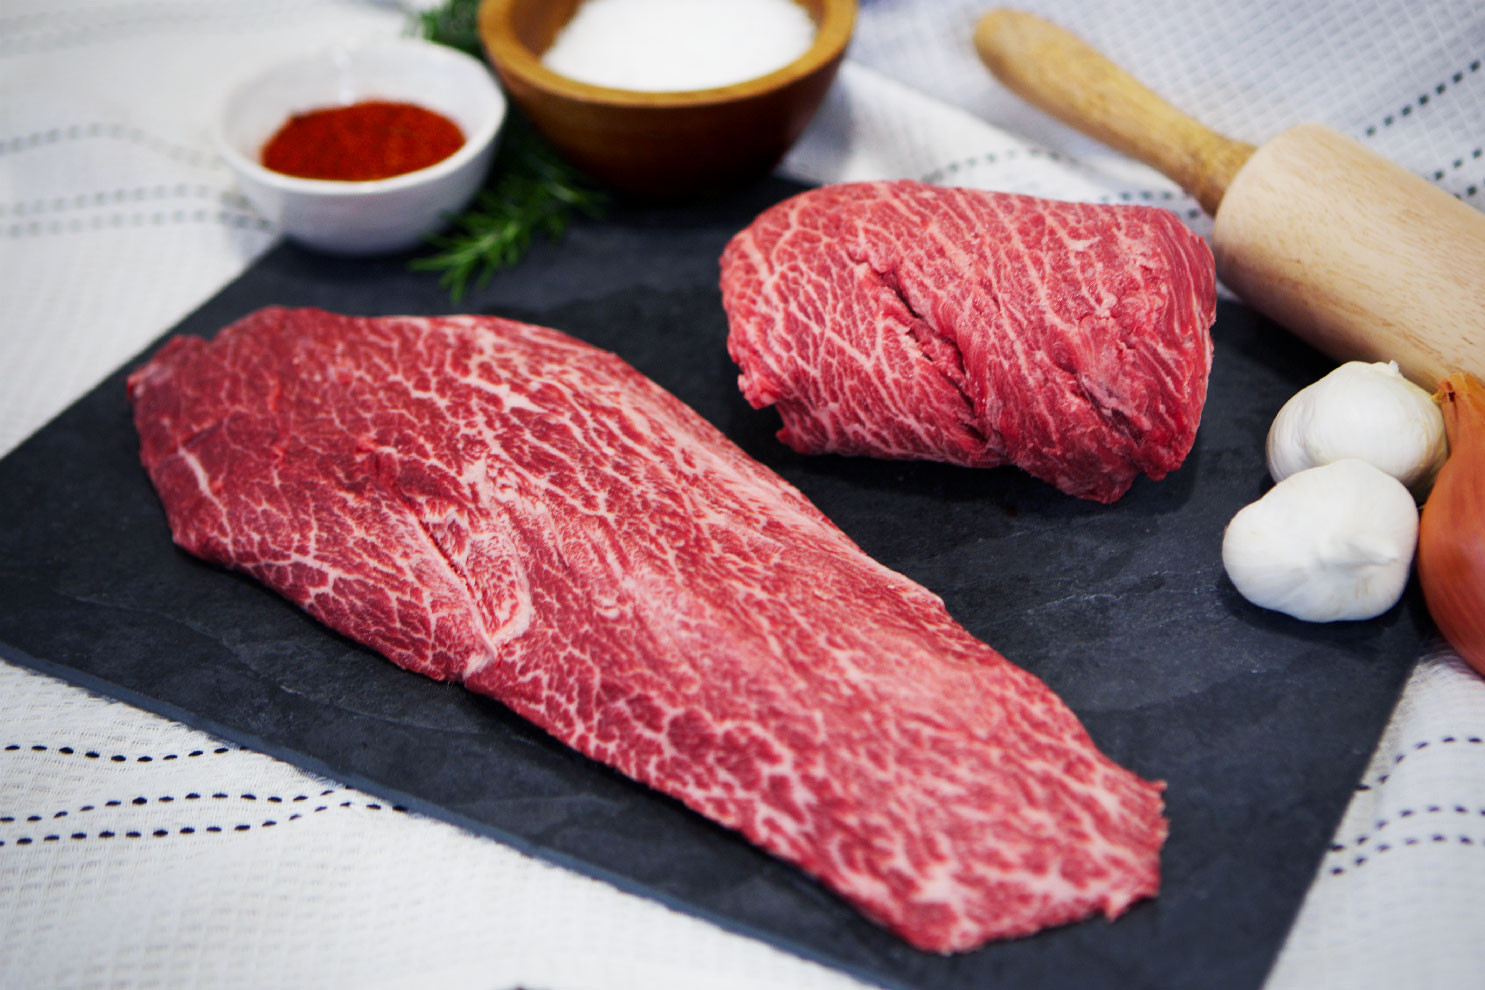 How to Cook a Wagyu Steak - Getting the Most Out of Your Meat Experience